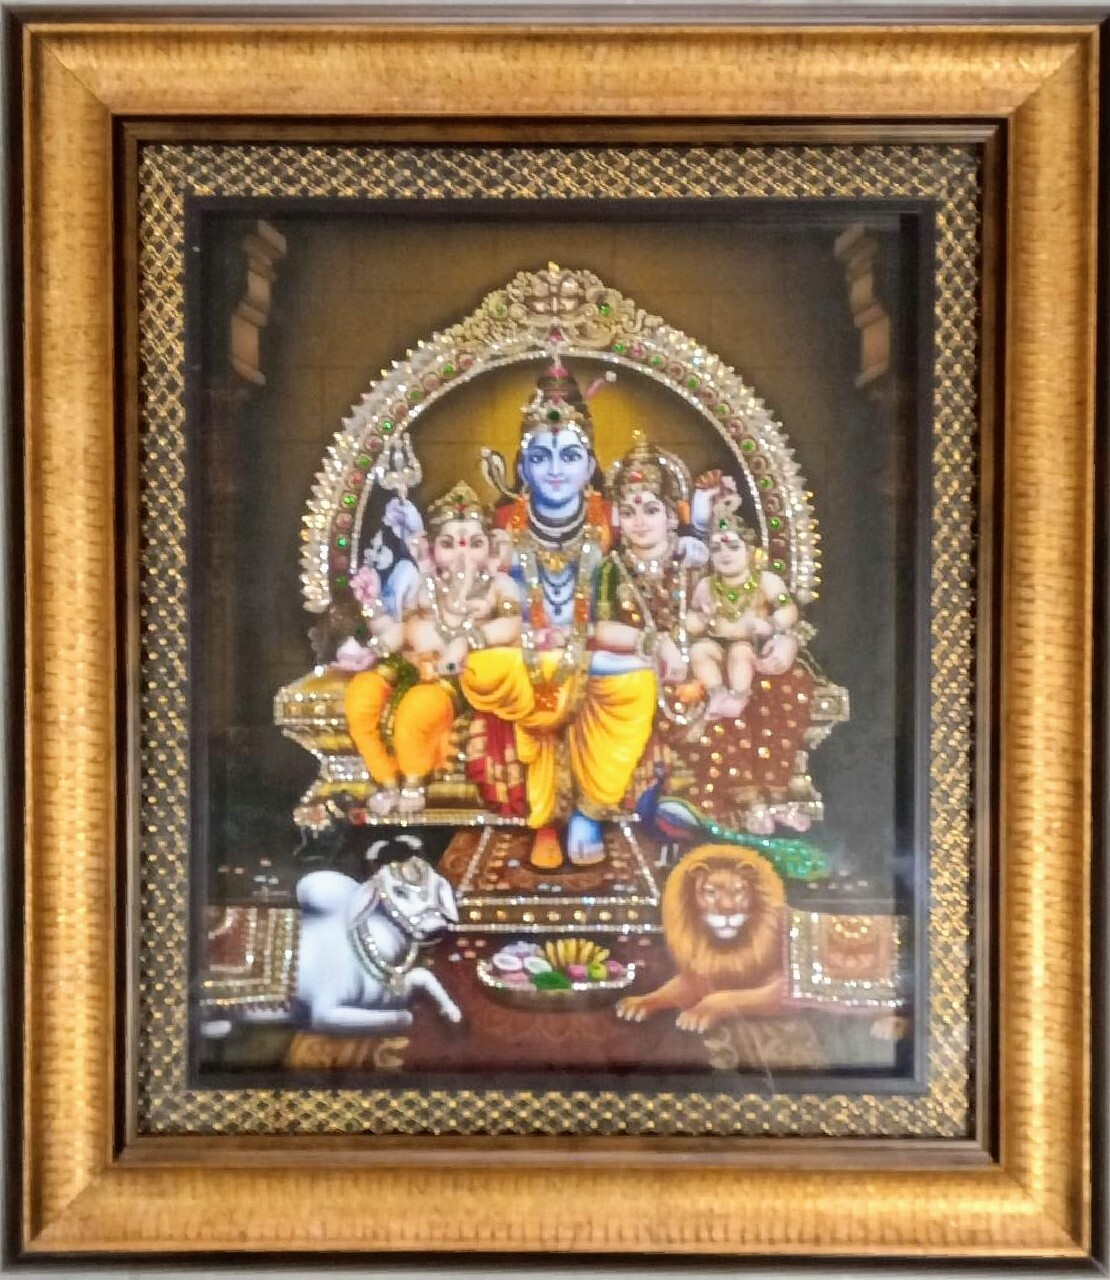 Lord Shiva Photoframe with rich stone work